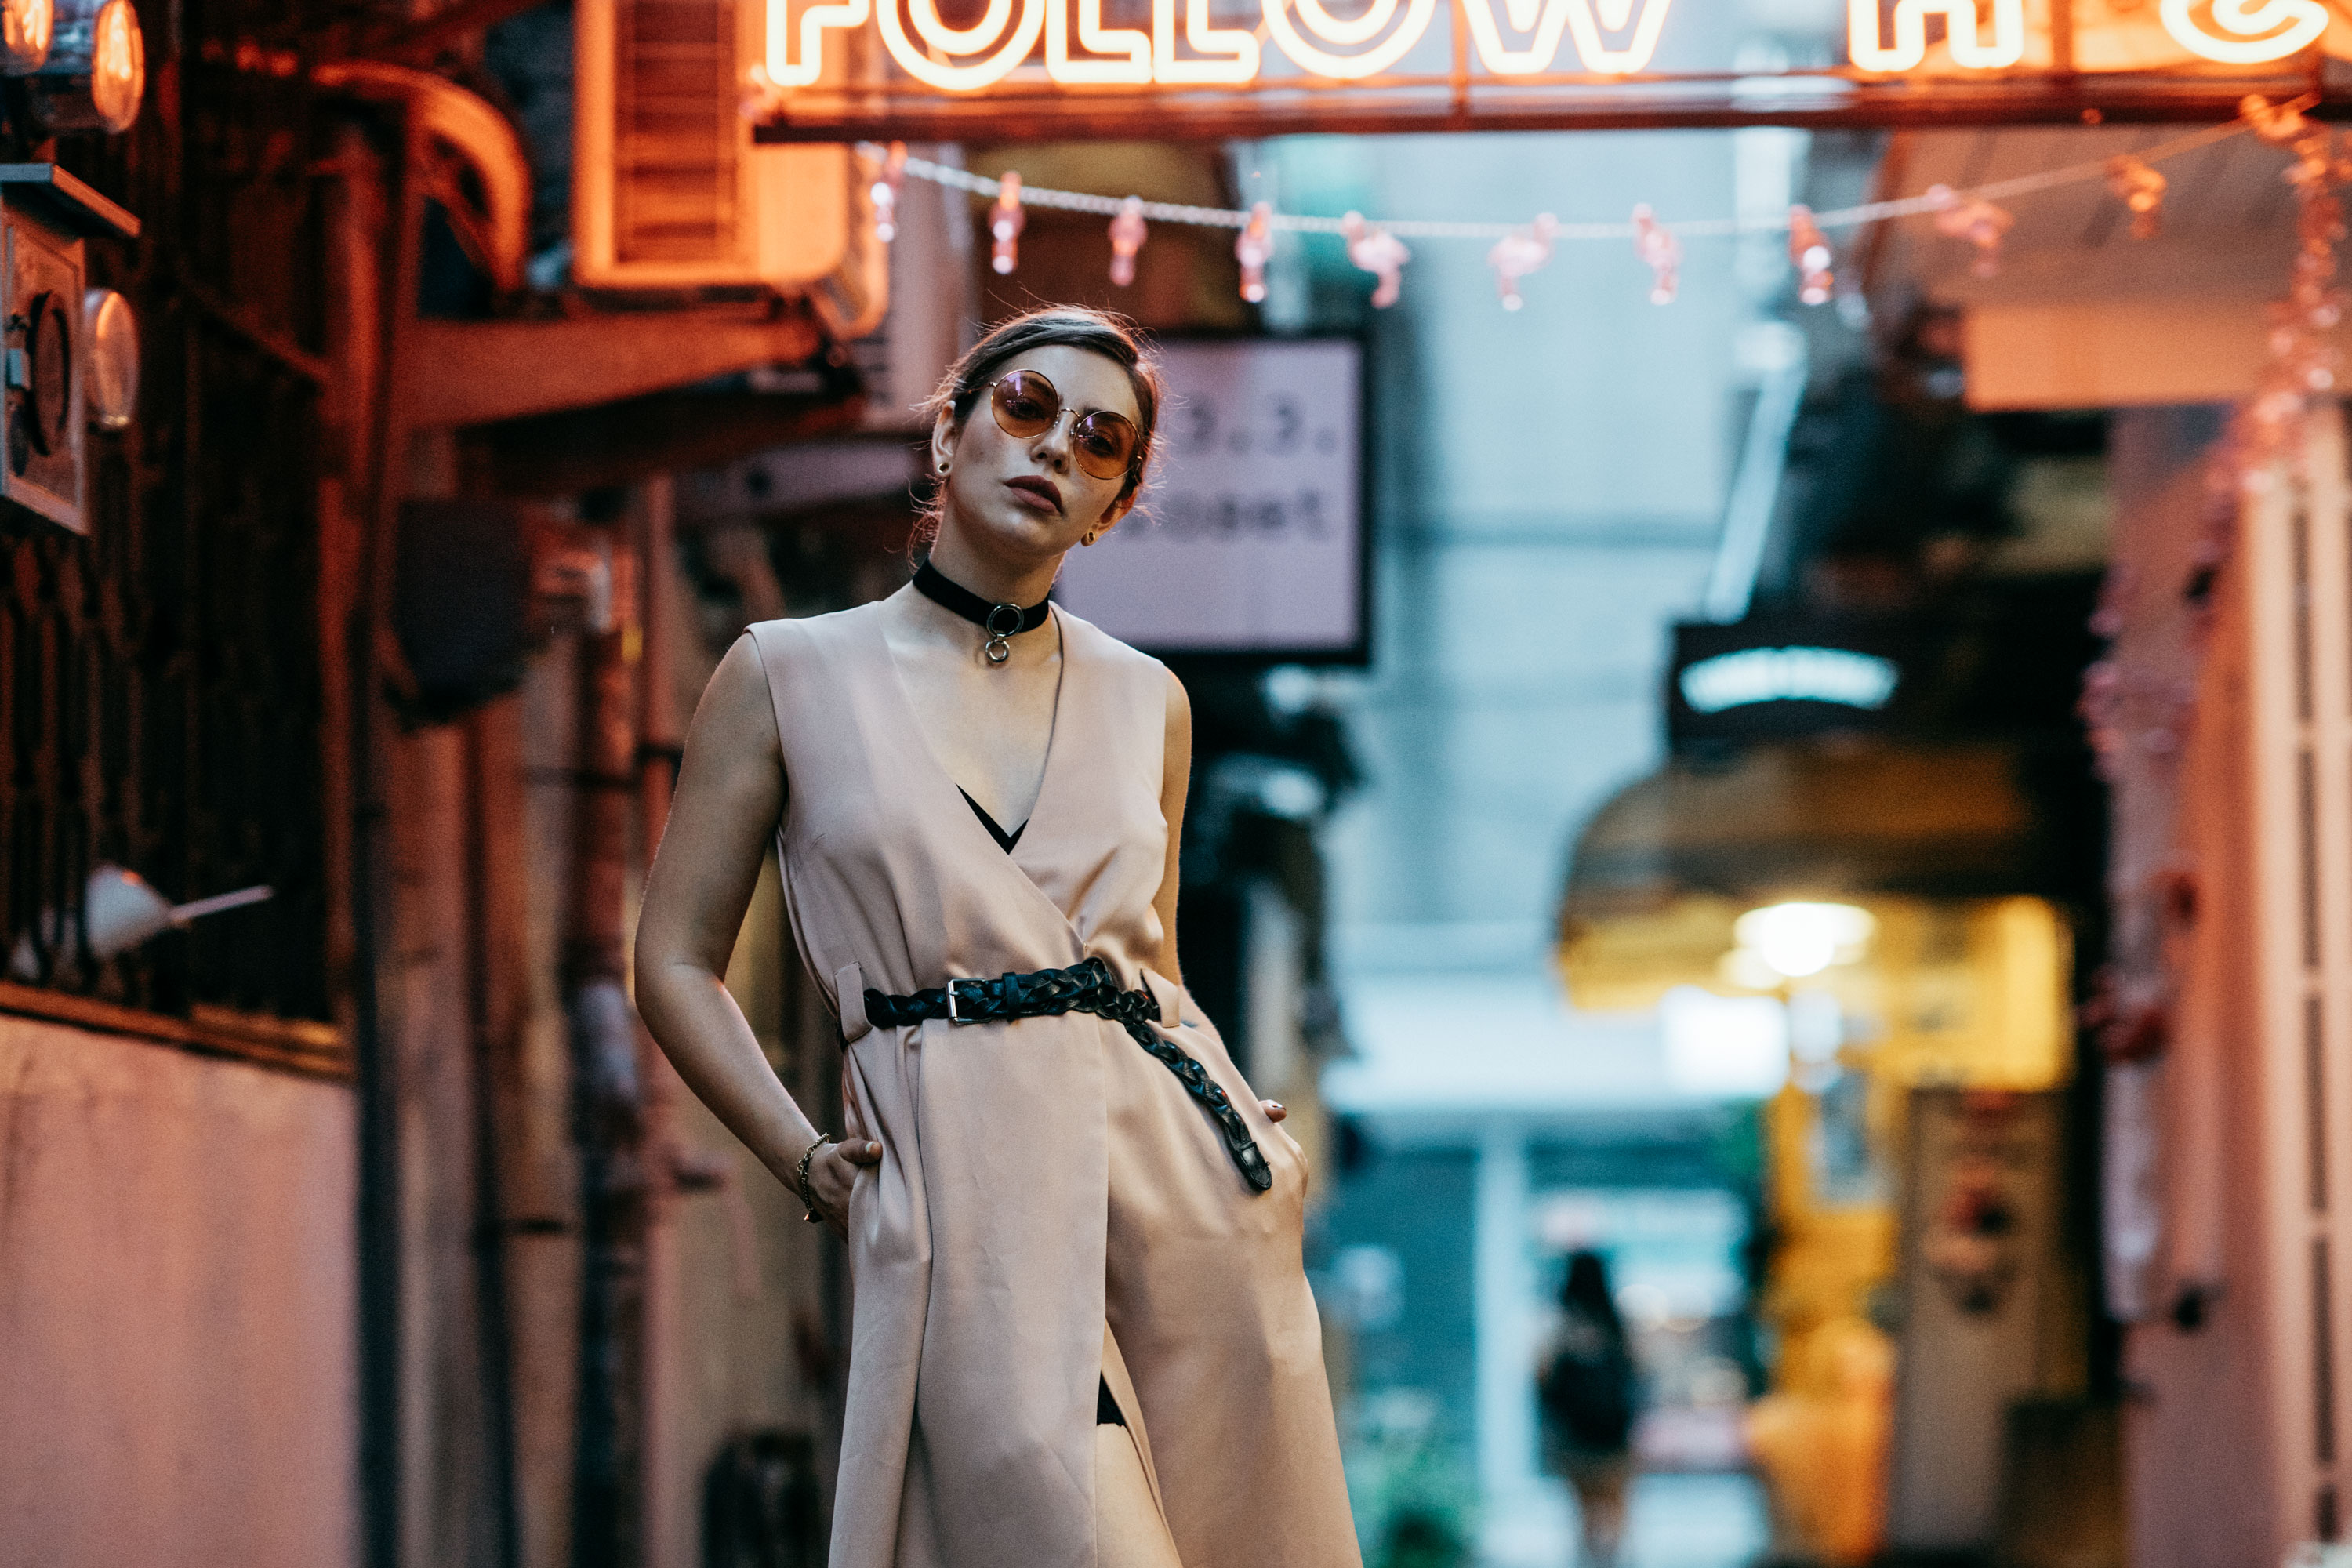 Big City Lights Editorial | outfit style: Asia, edgy, cool, sophisticated, sexy